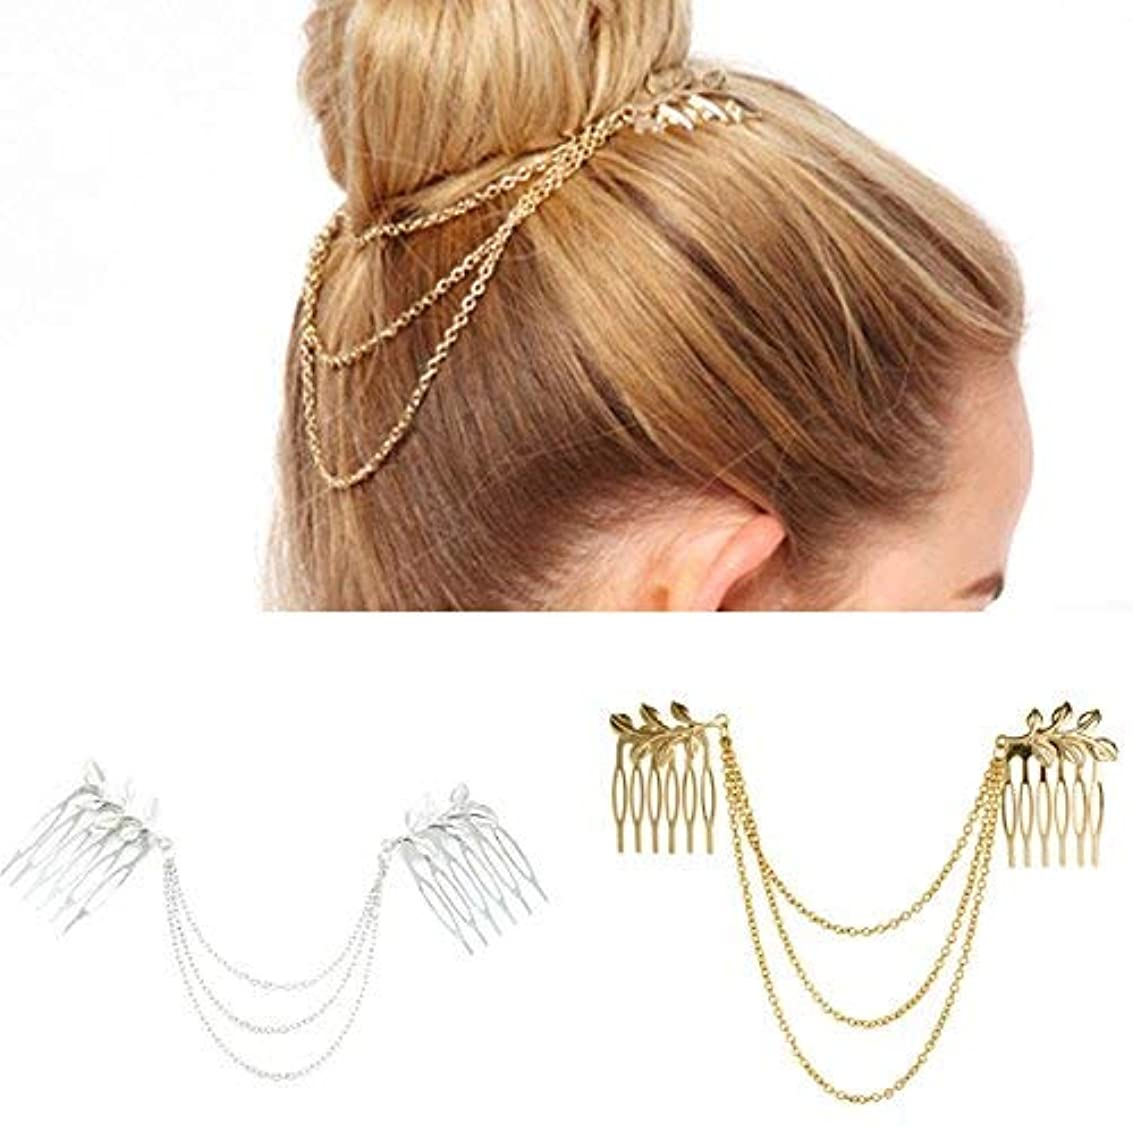 許されるマイコンホーンNumblartd 2 Pcs Women BOHO Chic Metal Leaf Chain Tassel Headband Hair Comb - Fashion Fringe Hair Clip Pins Hairpin HeadPiece Head Band Headwear Hair Accessories for Wedding Party or Everyday Wear [並行輸入品]